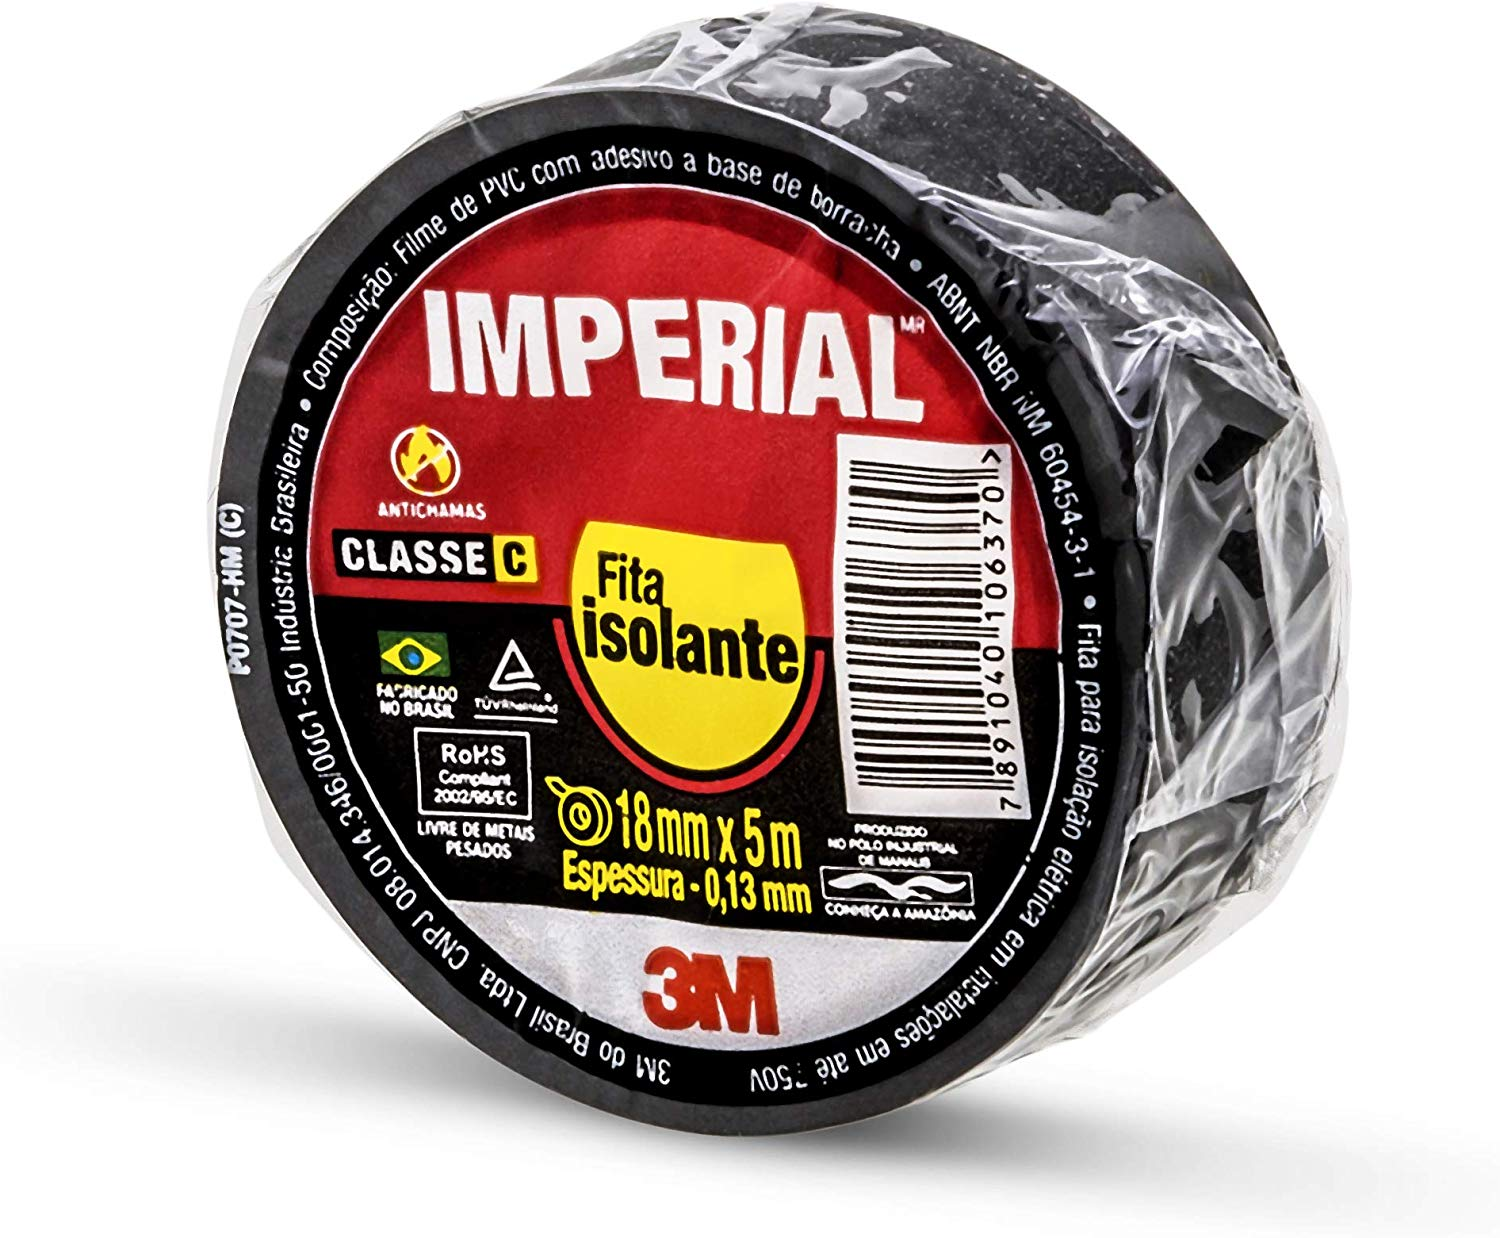 Fita Isolamento Imperial 18mmx5m 3M H0002202853